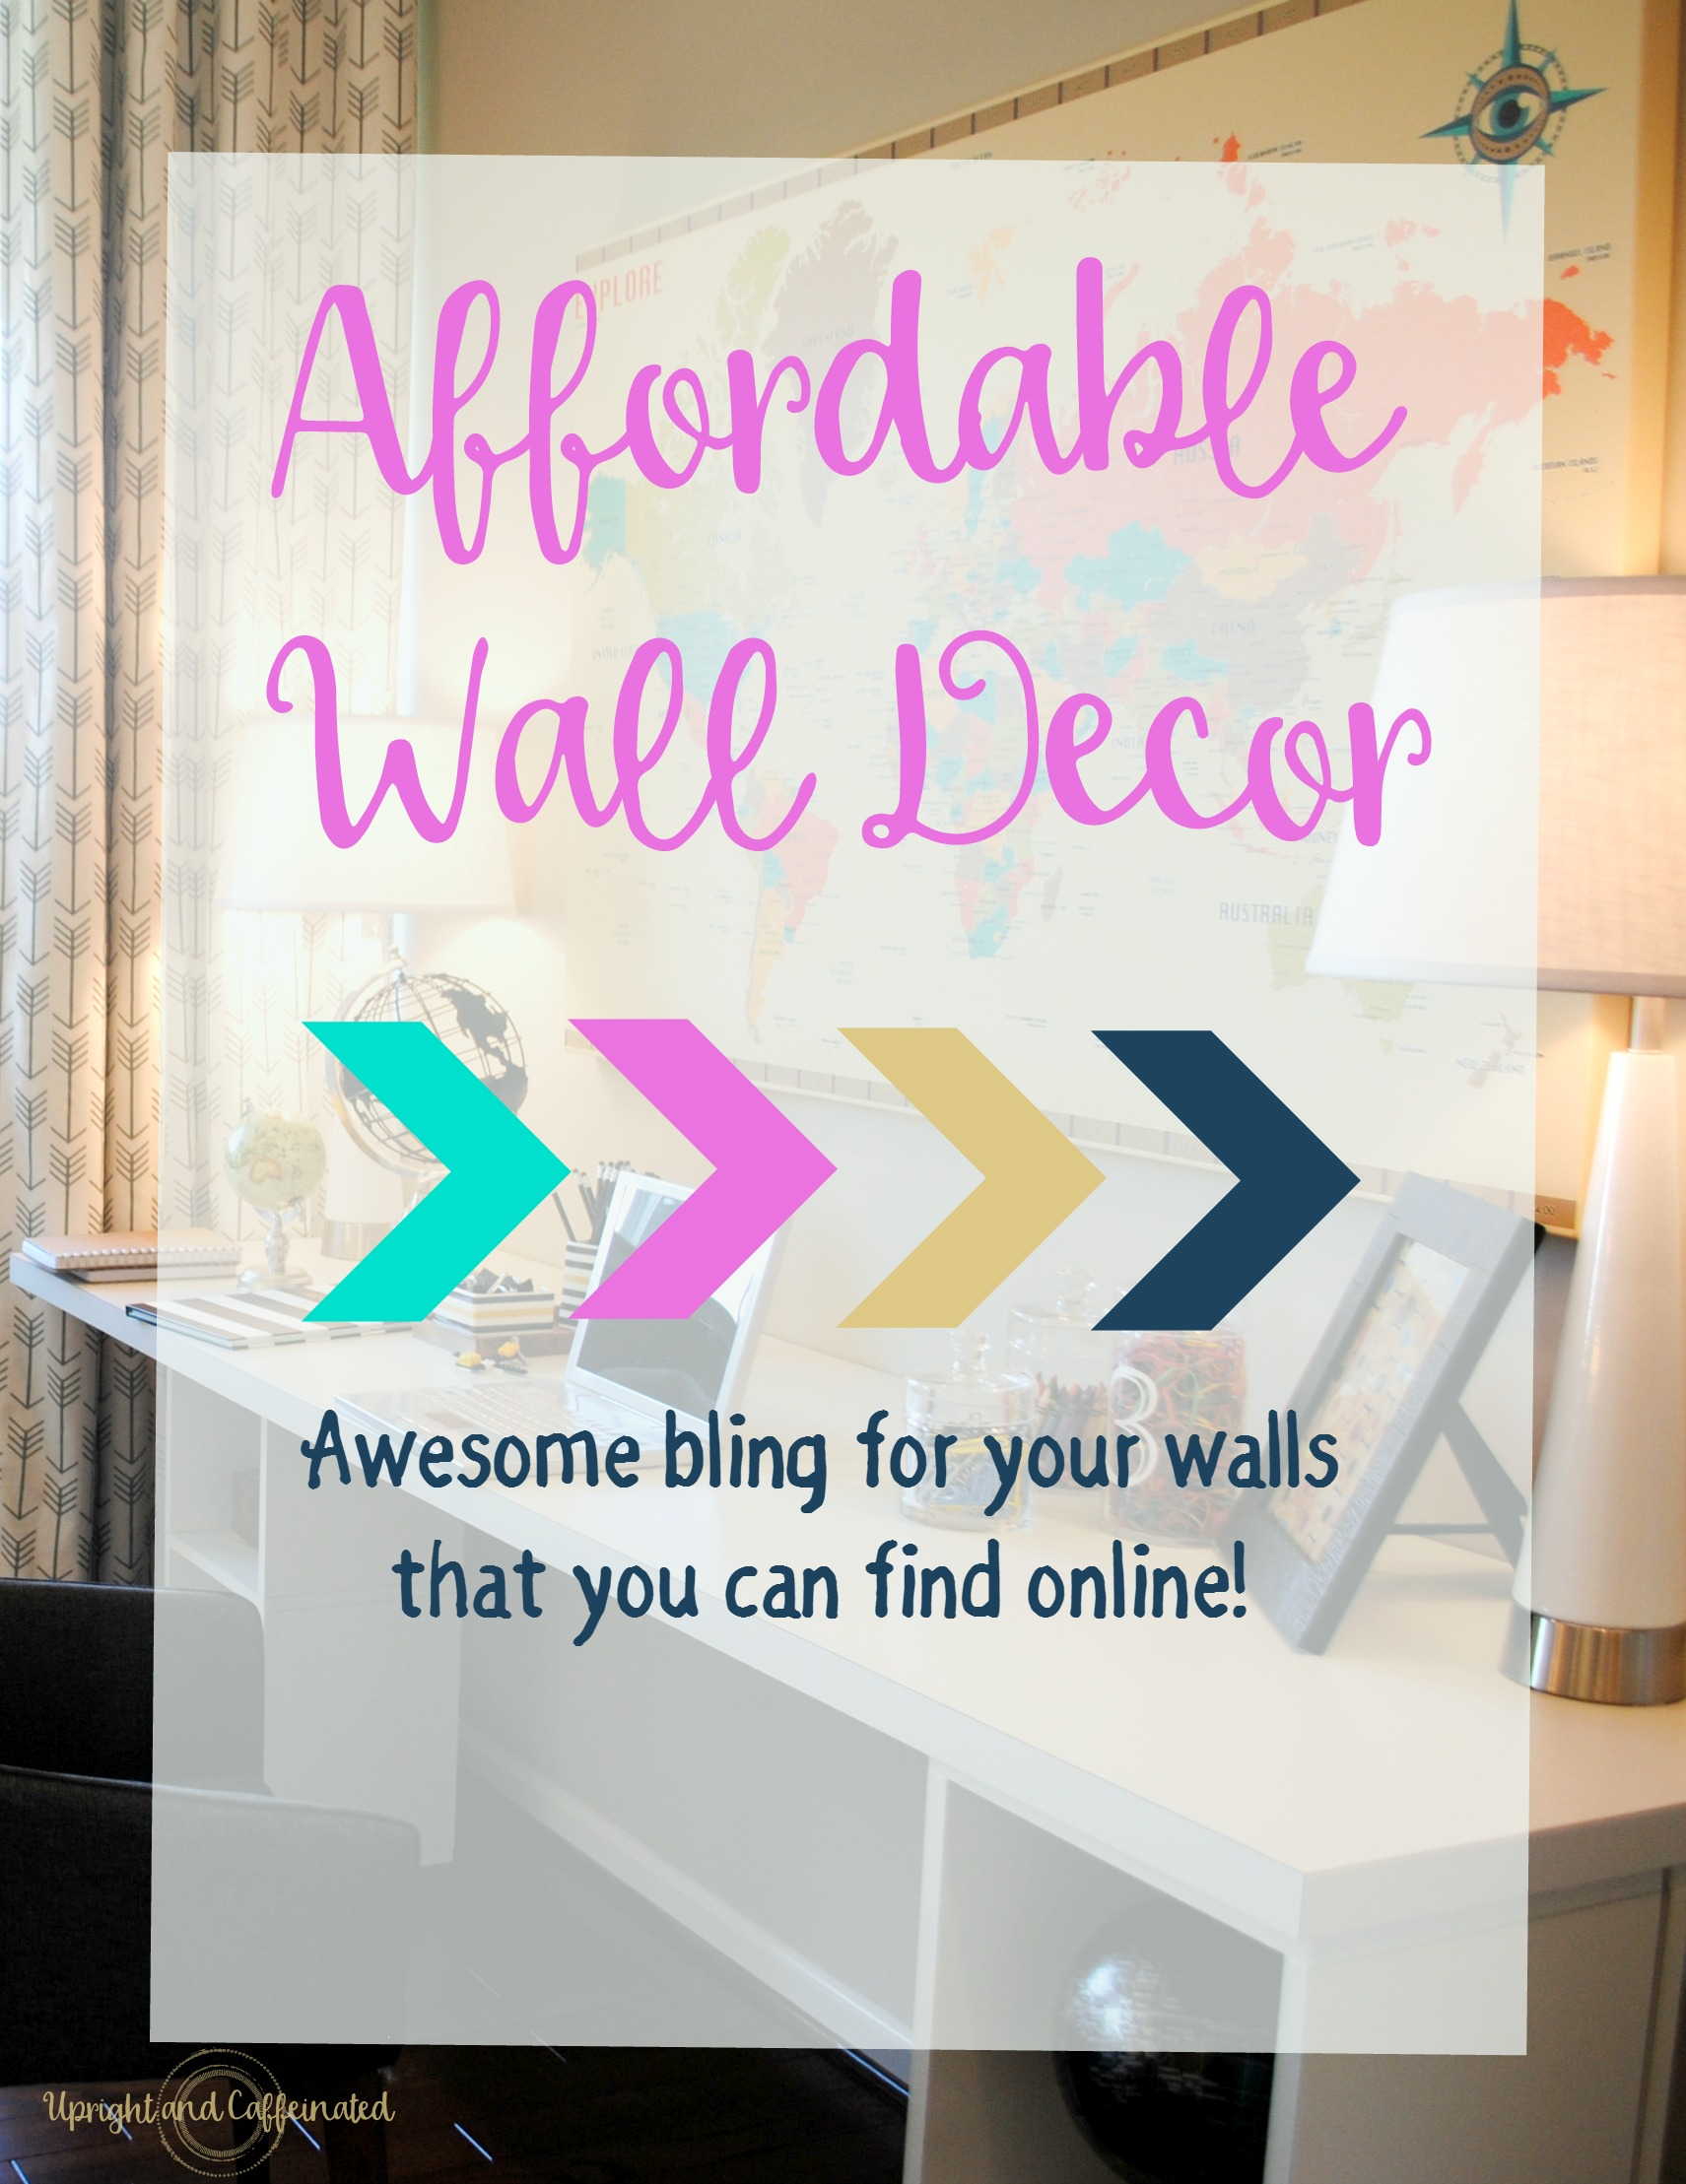 Excellent resource for affordable wall decor you can find online.